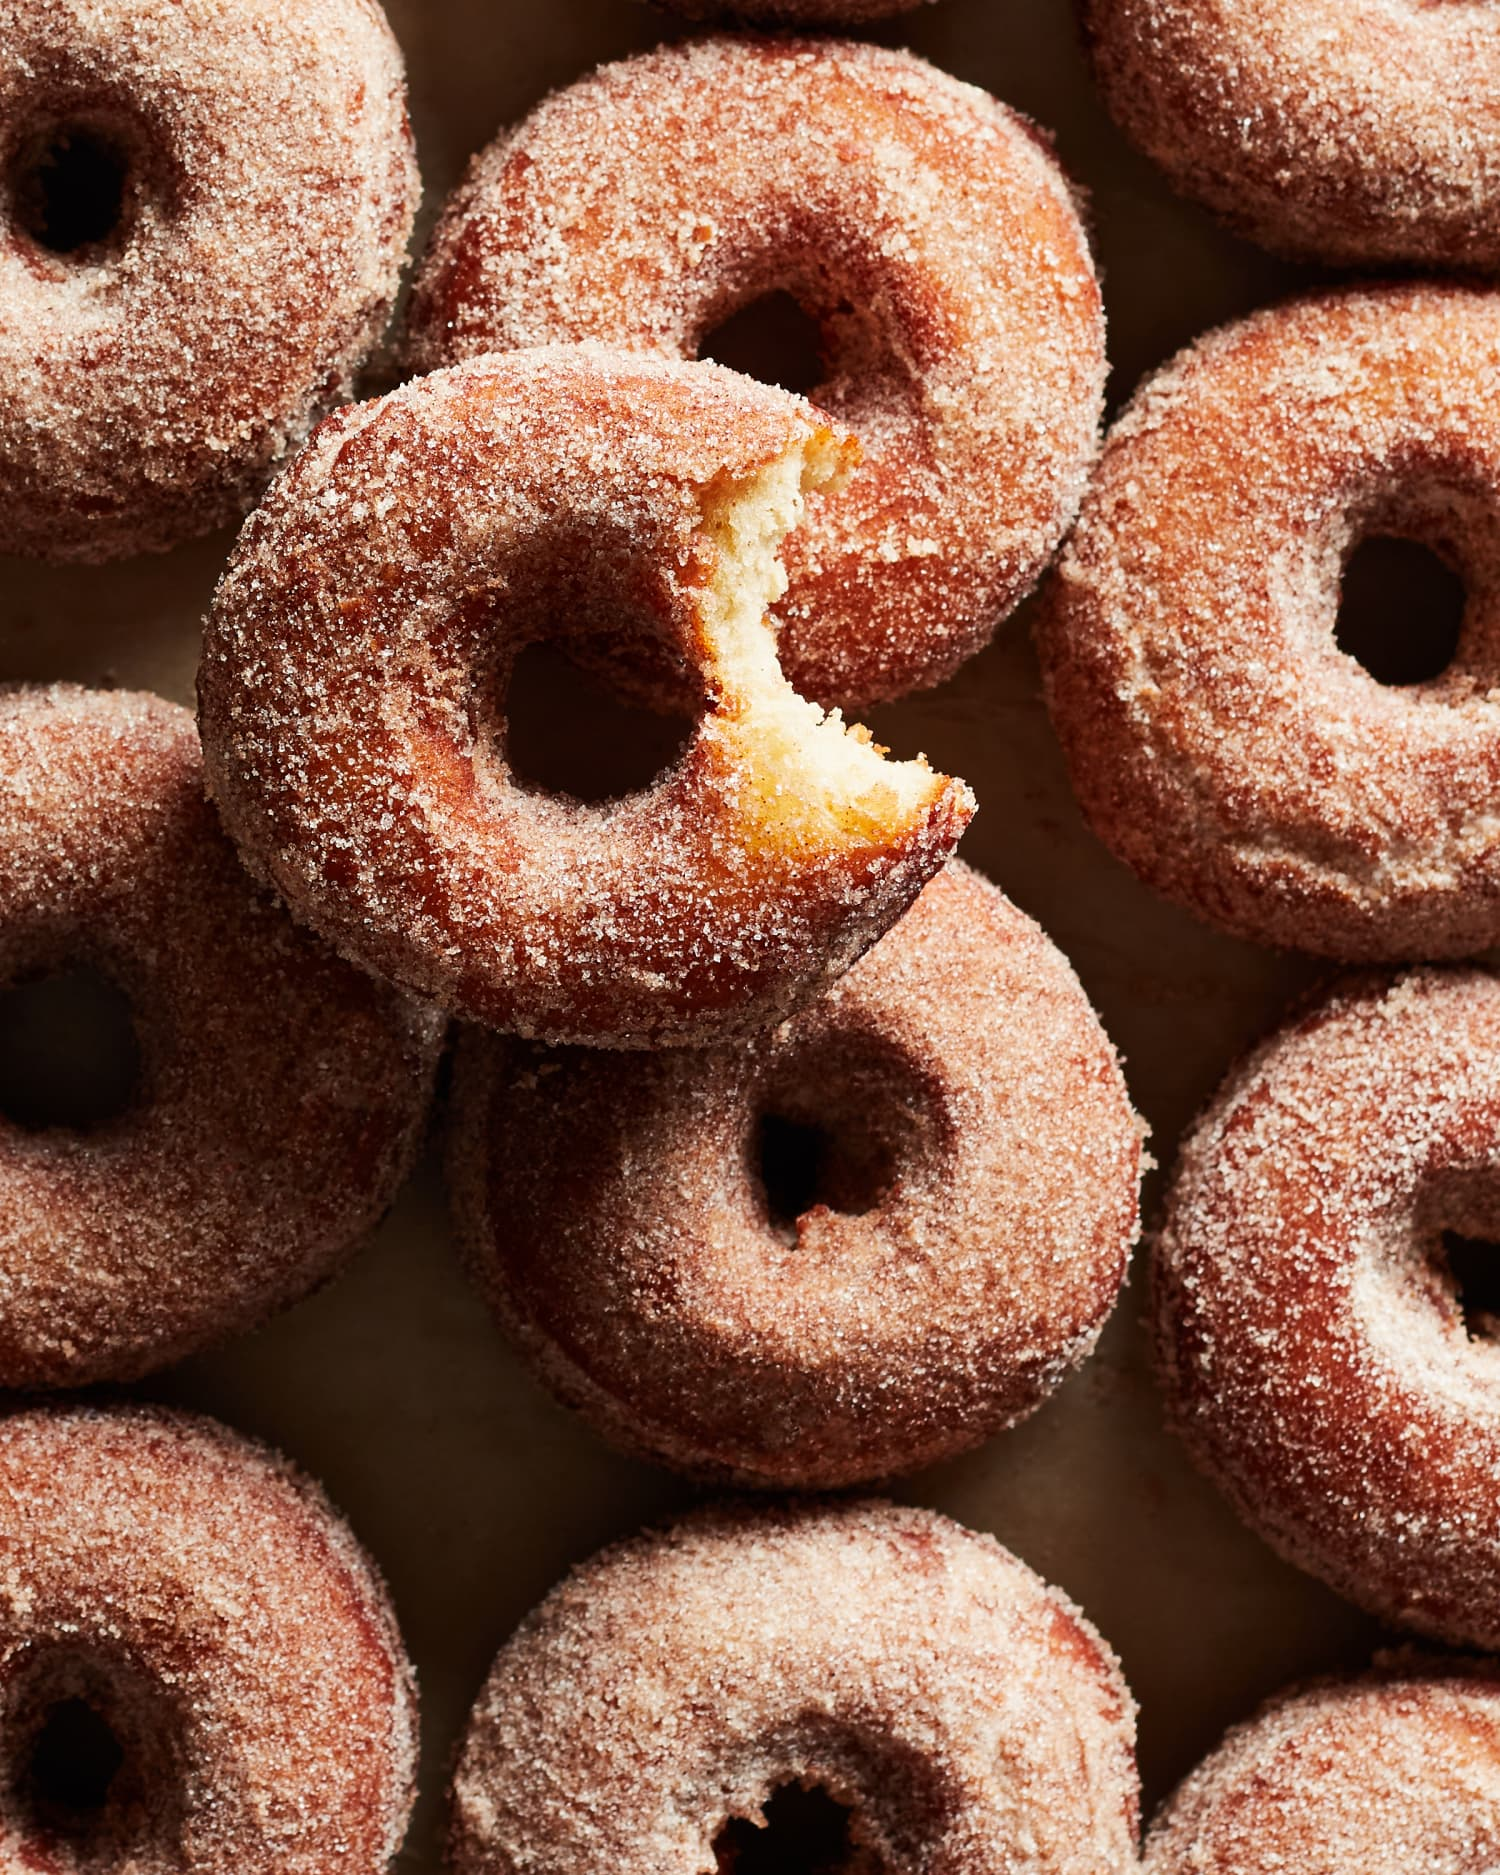 Apple Cider Doughnuts Are a Must-Make This Fall